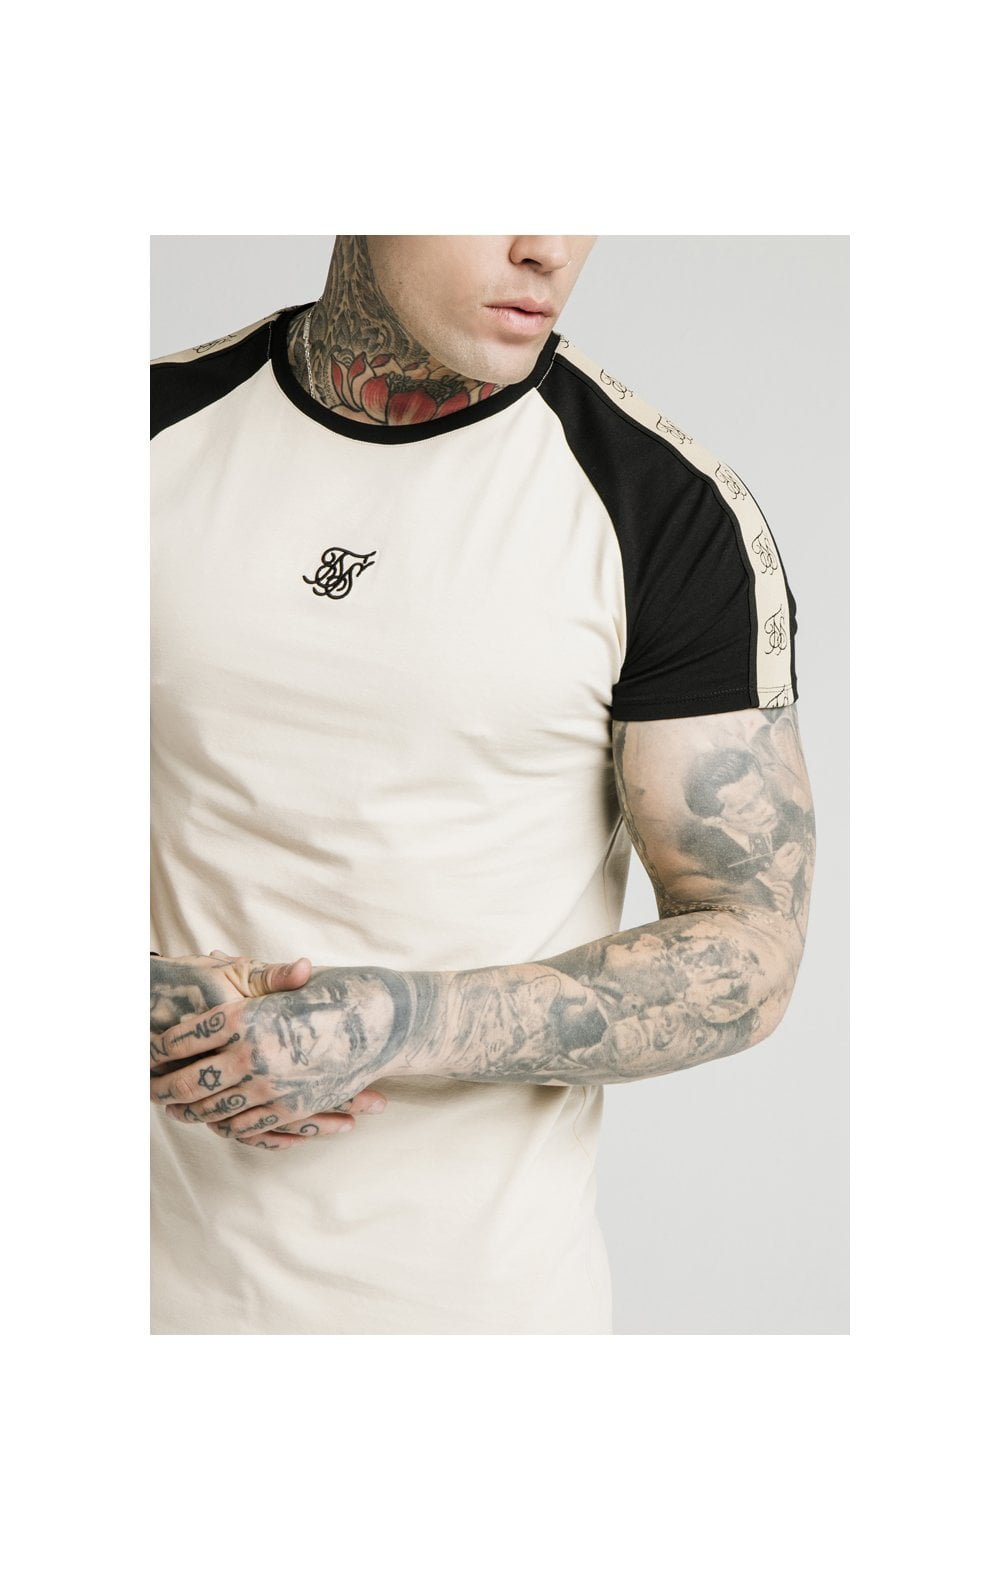 SikSilk Raglan Premium Tape Gym Tee - Ecru & Black (1)